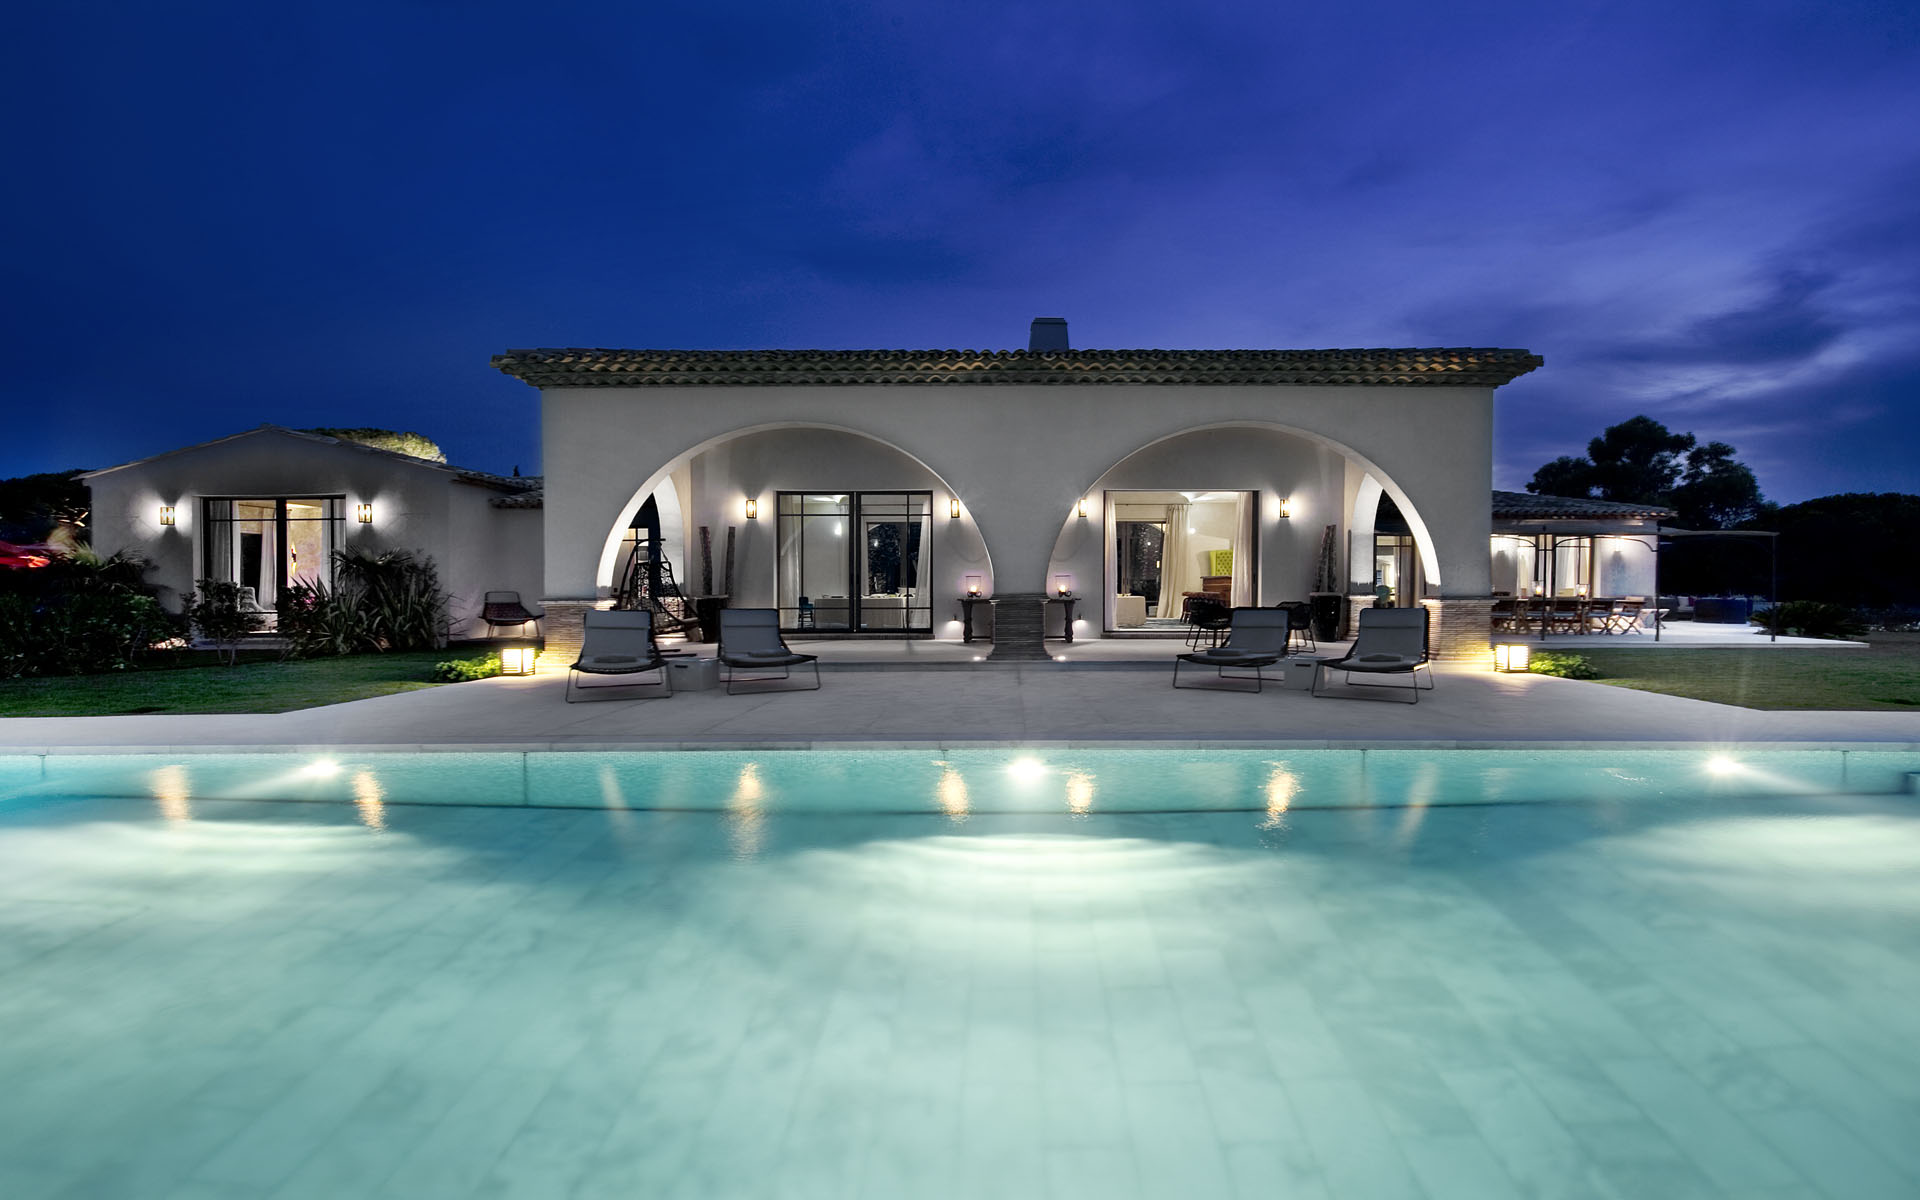 arched pool house at night | Interior Design Ideas.